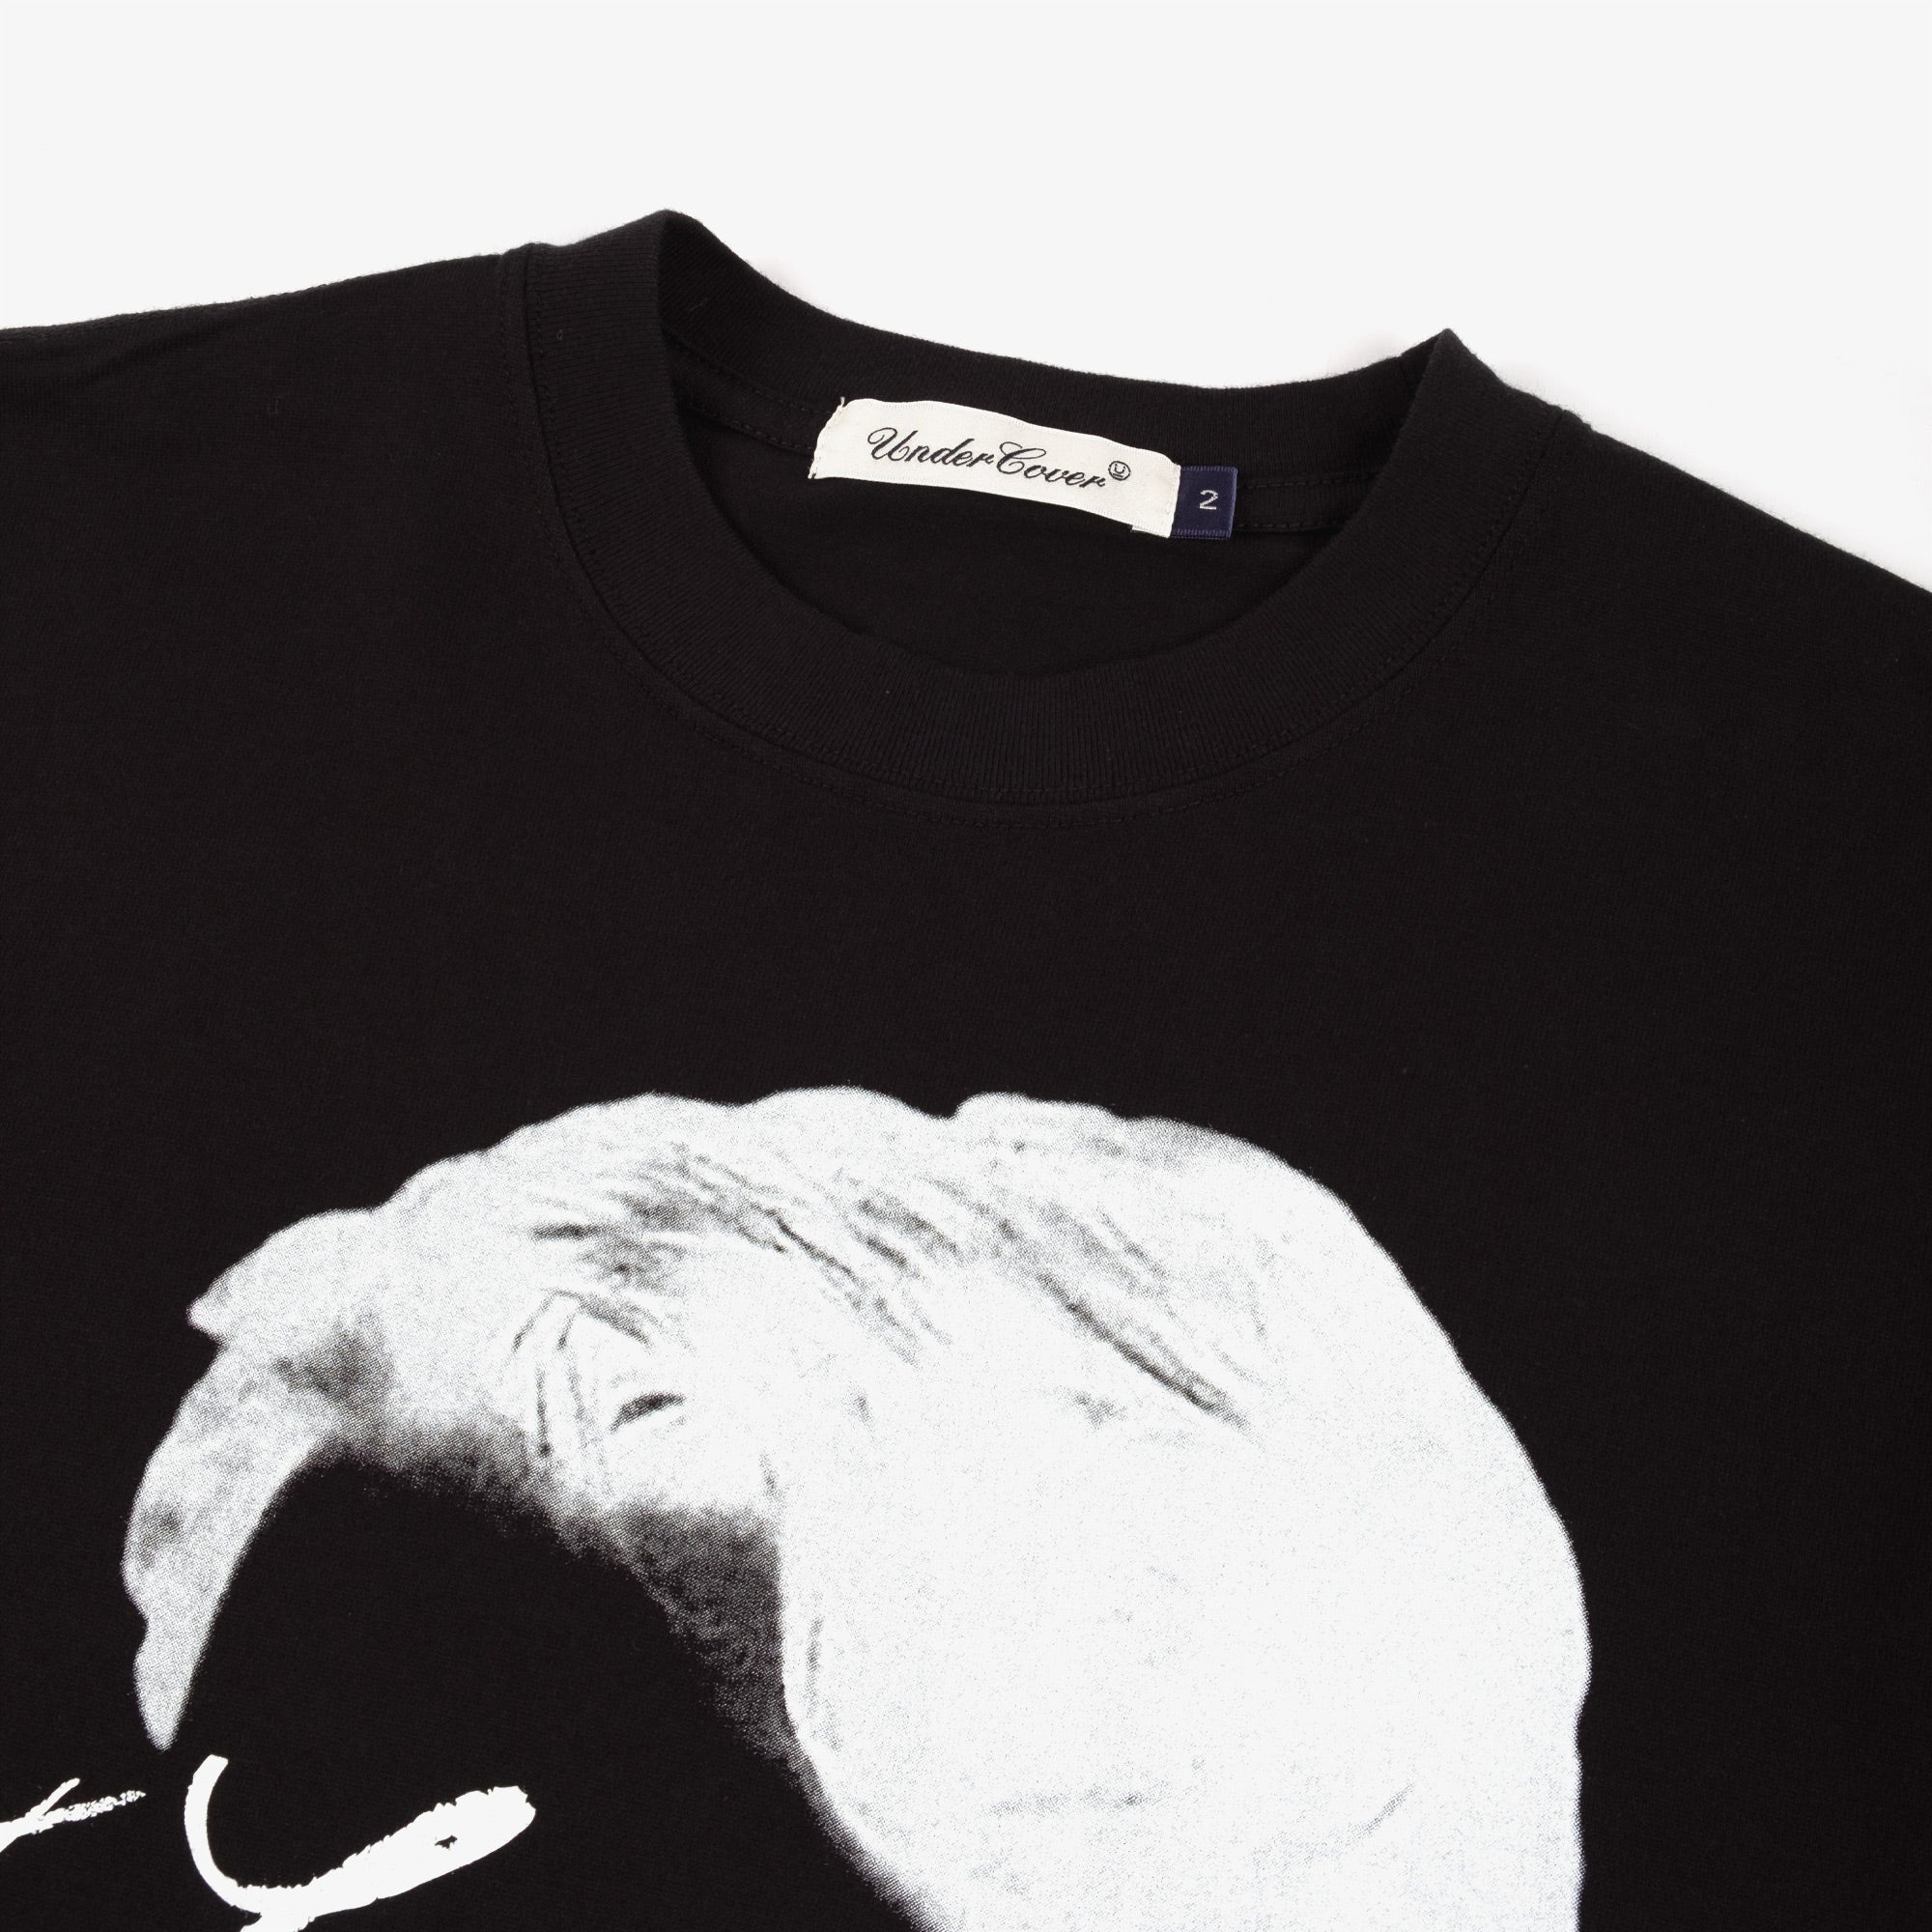 Undercover The End Tee UC2A3806 - Black 2